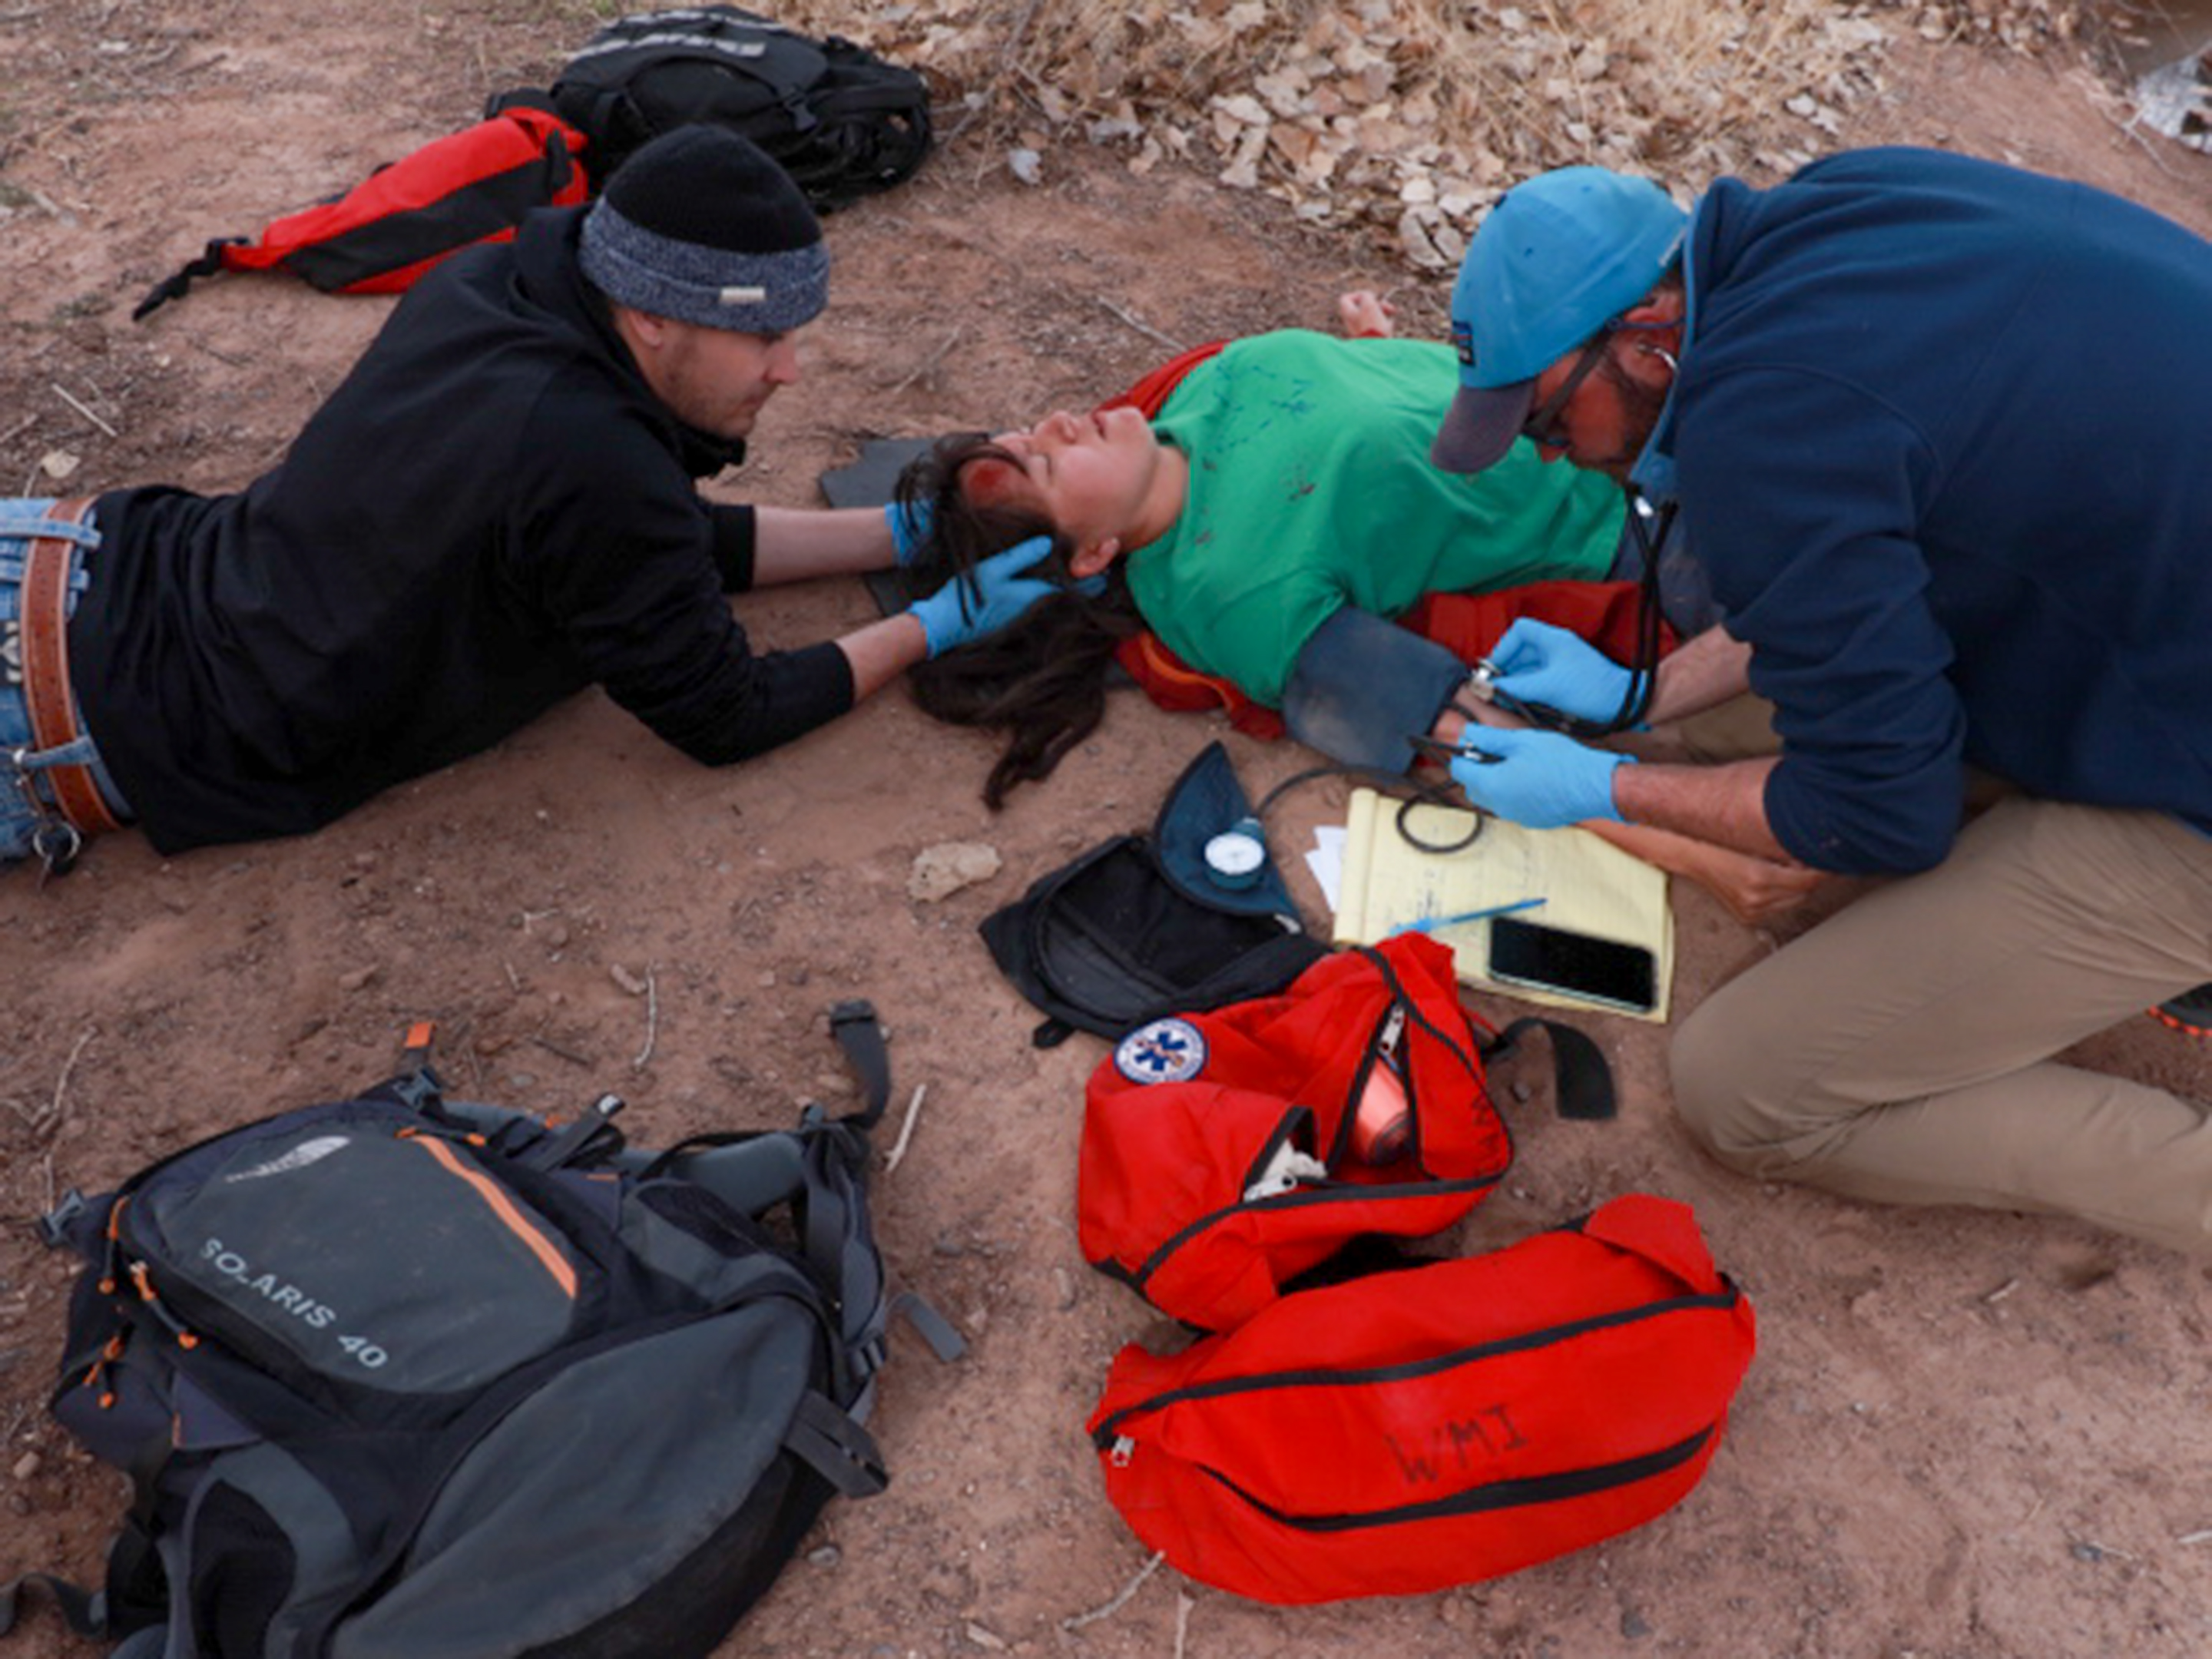 Two rescuers stabilize an unconscious patient's head and check her blood pressure.